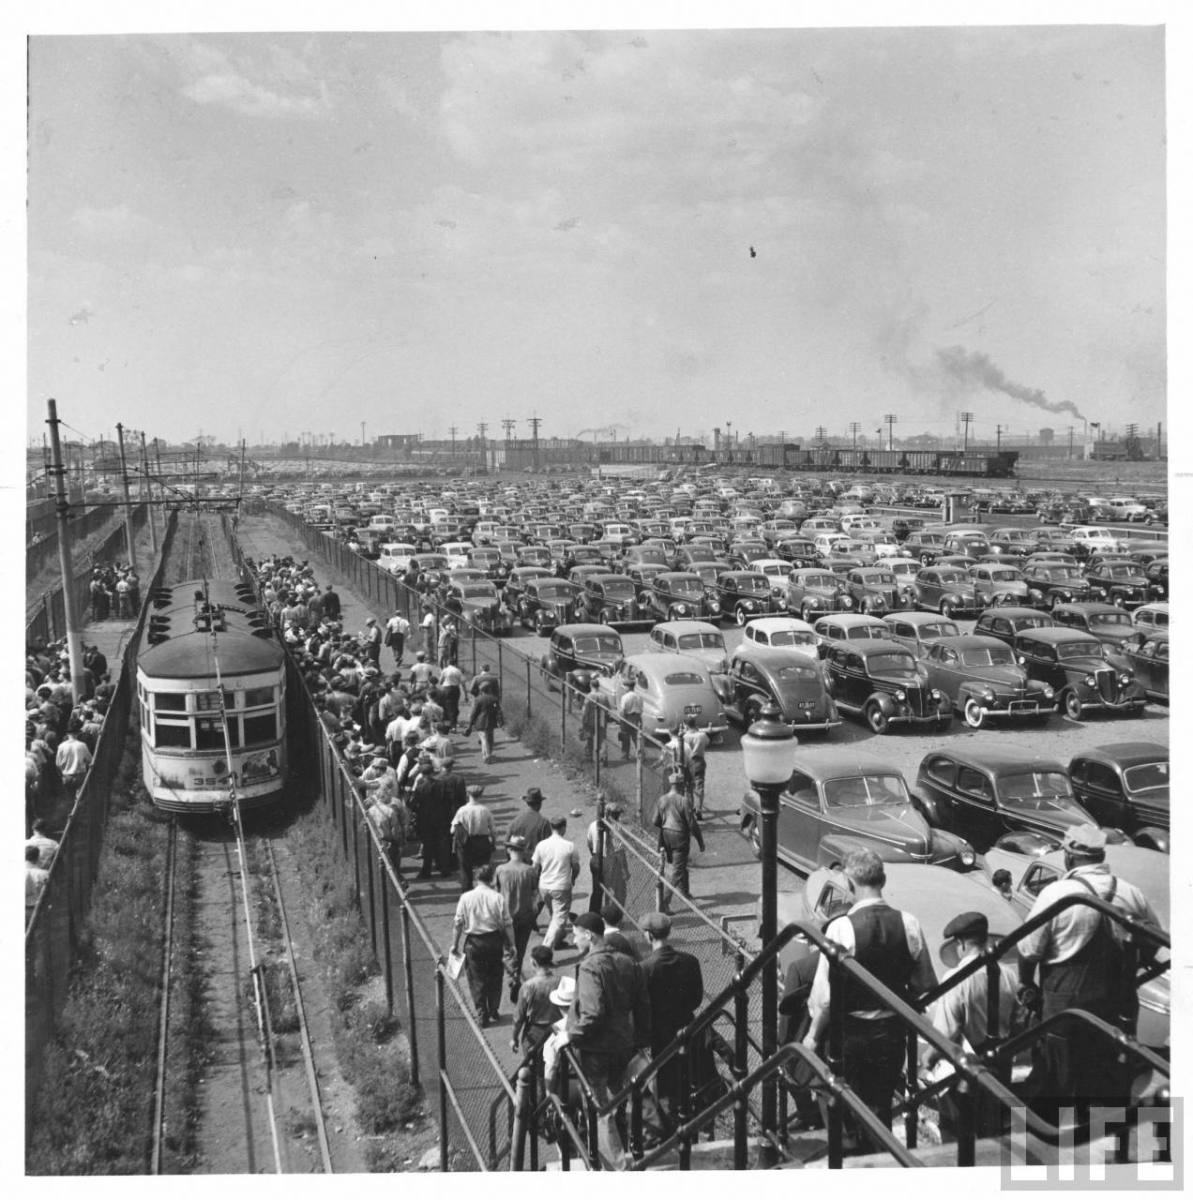 FORD MOTOR COMPANY RIVER ROUGE PLANT